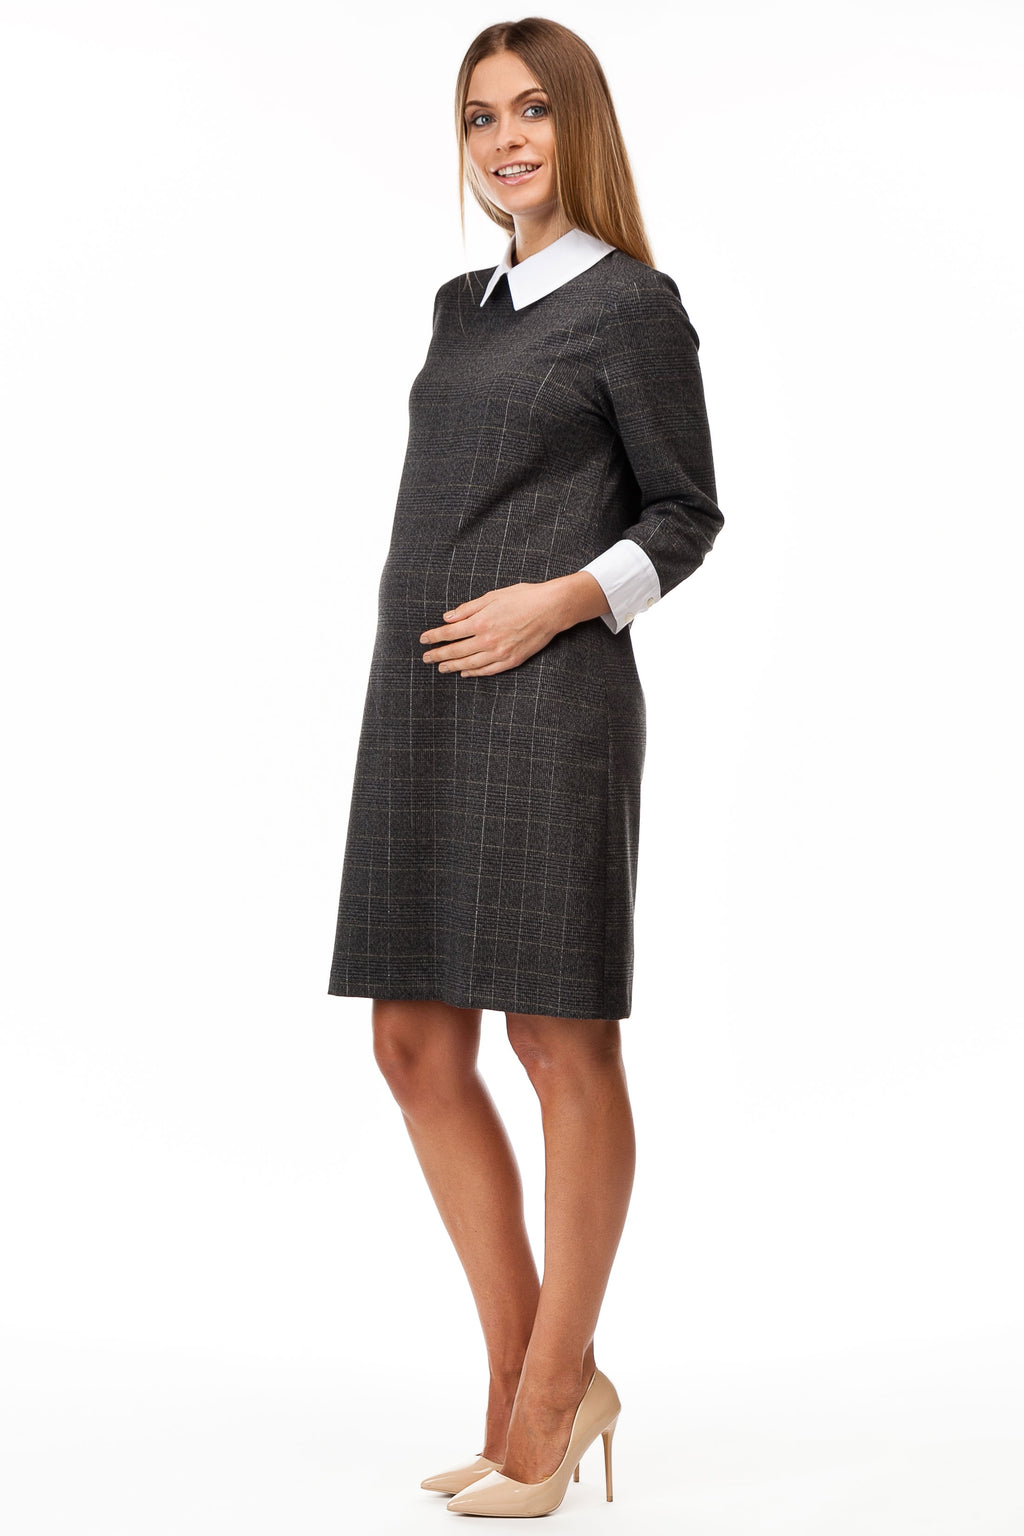 Pietro Brunelli Edinburgh Maternity Shift Dress